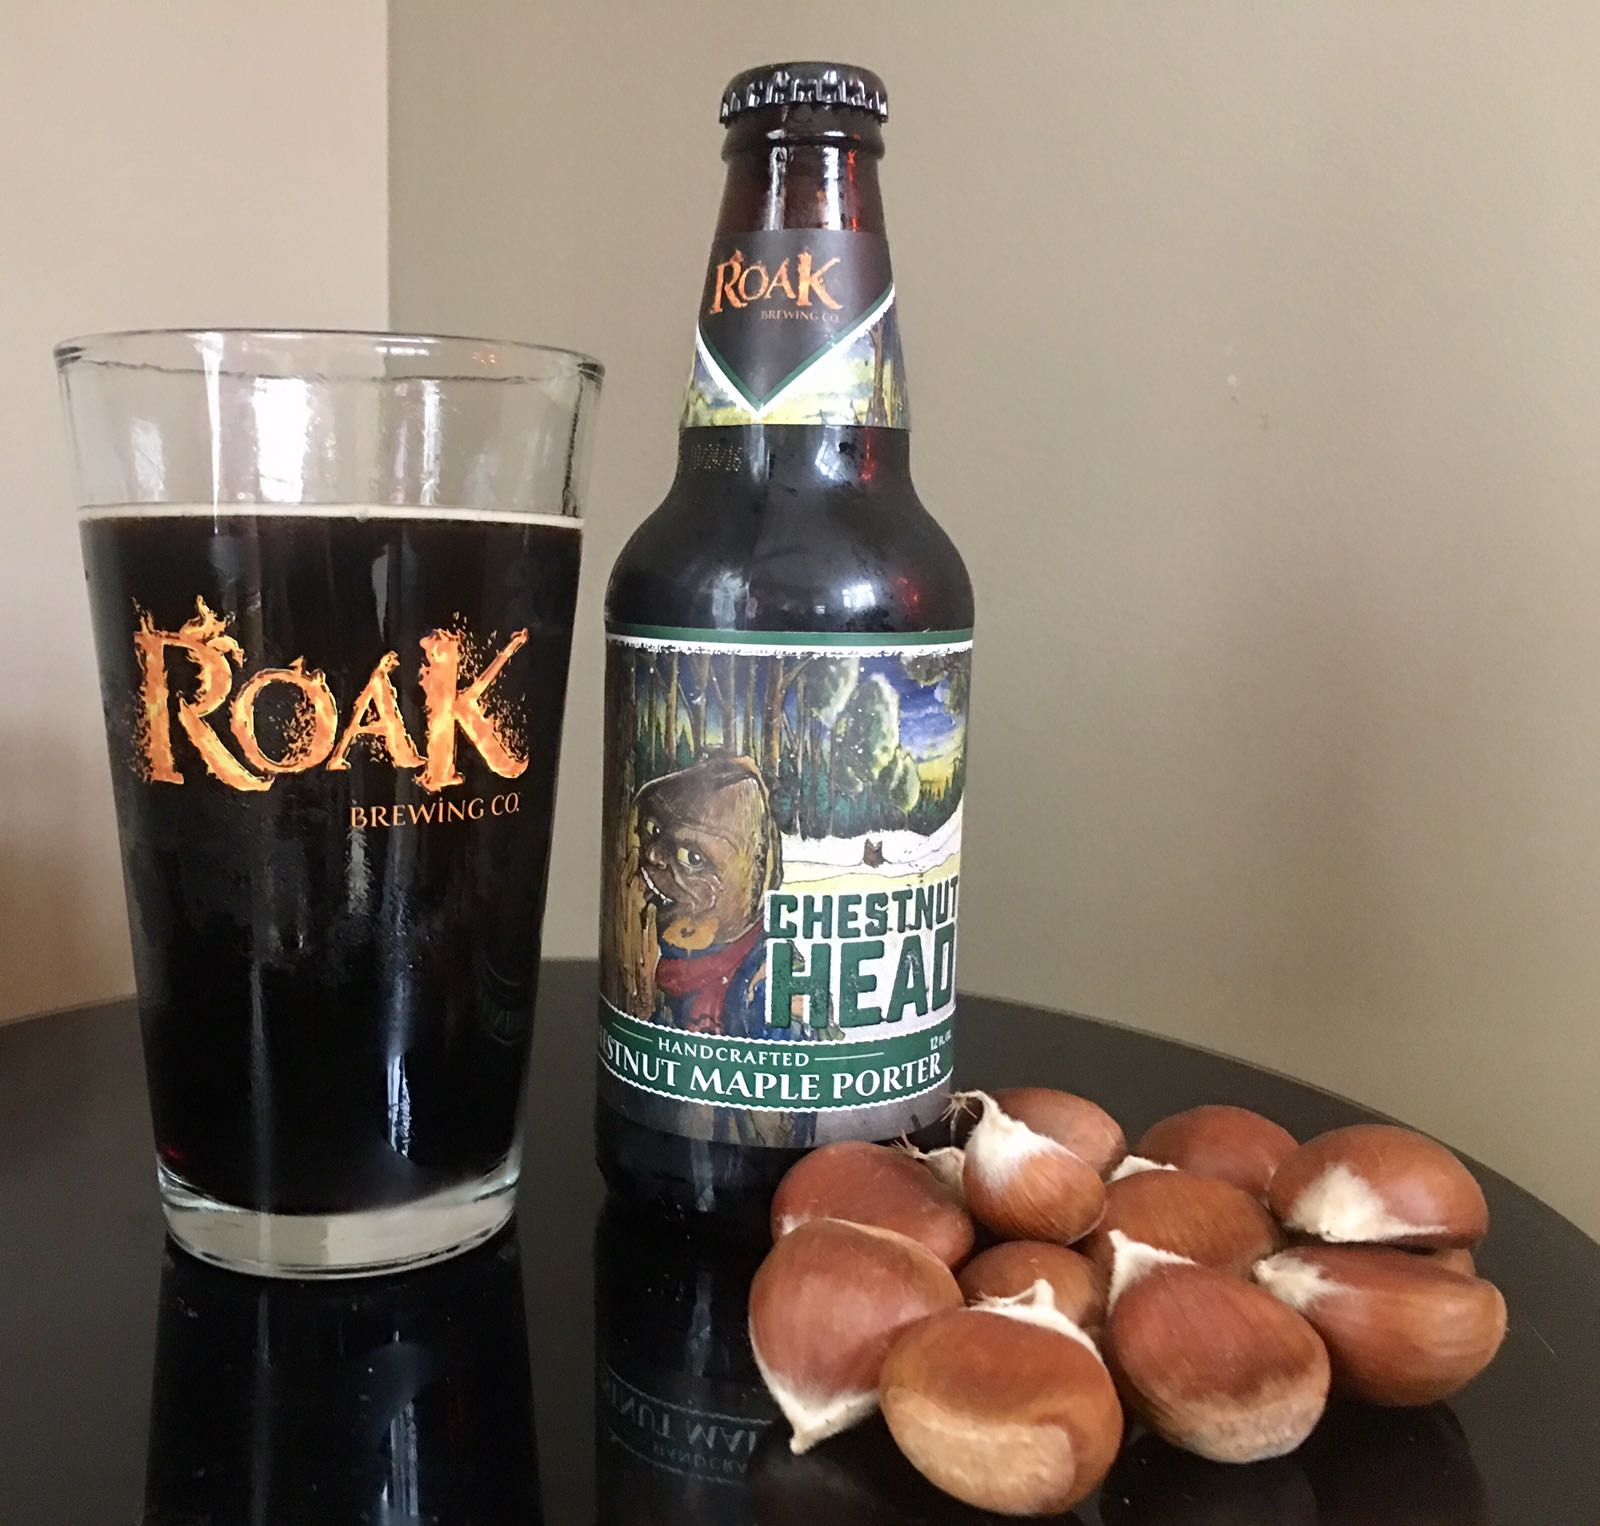 best roak beer photo.jpg